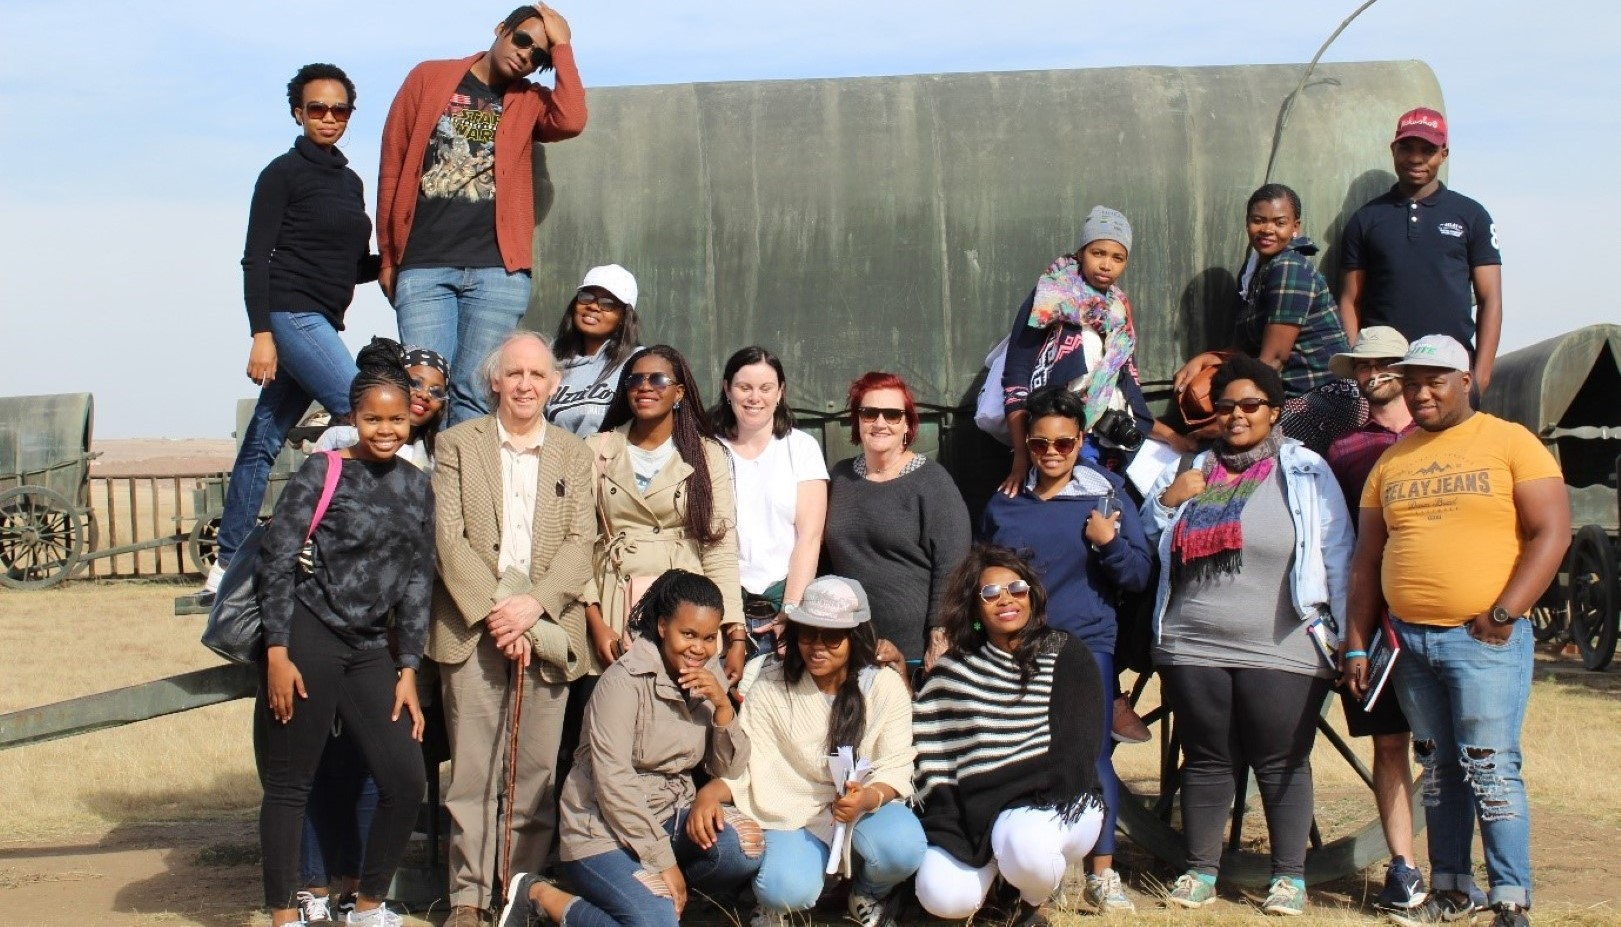 CCMS students and staff during their field trip to the KwaZulu-Natal Battlefields.